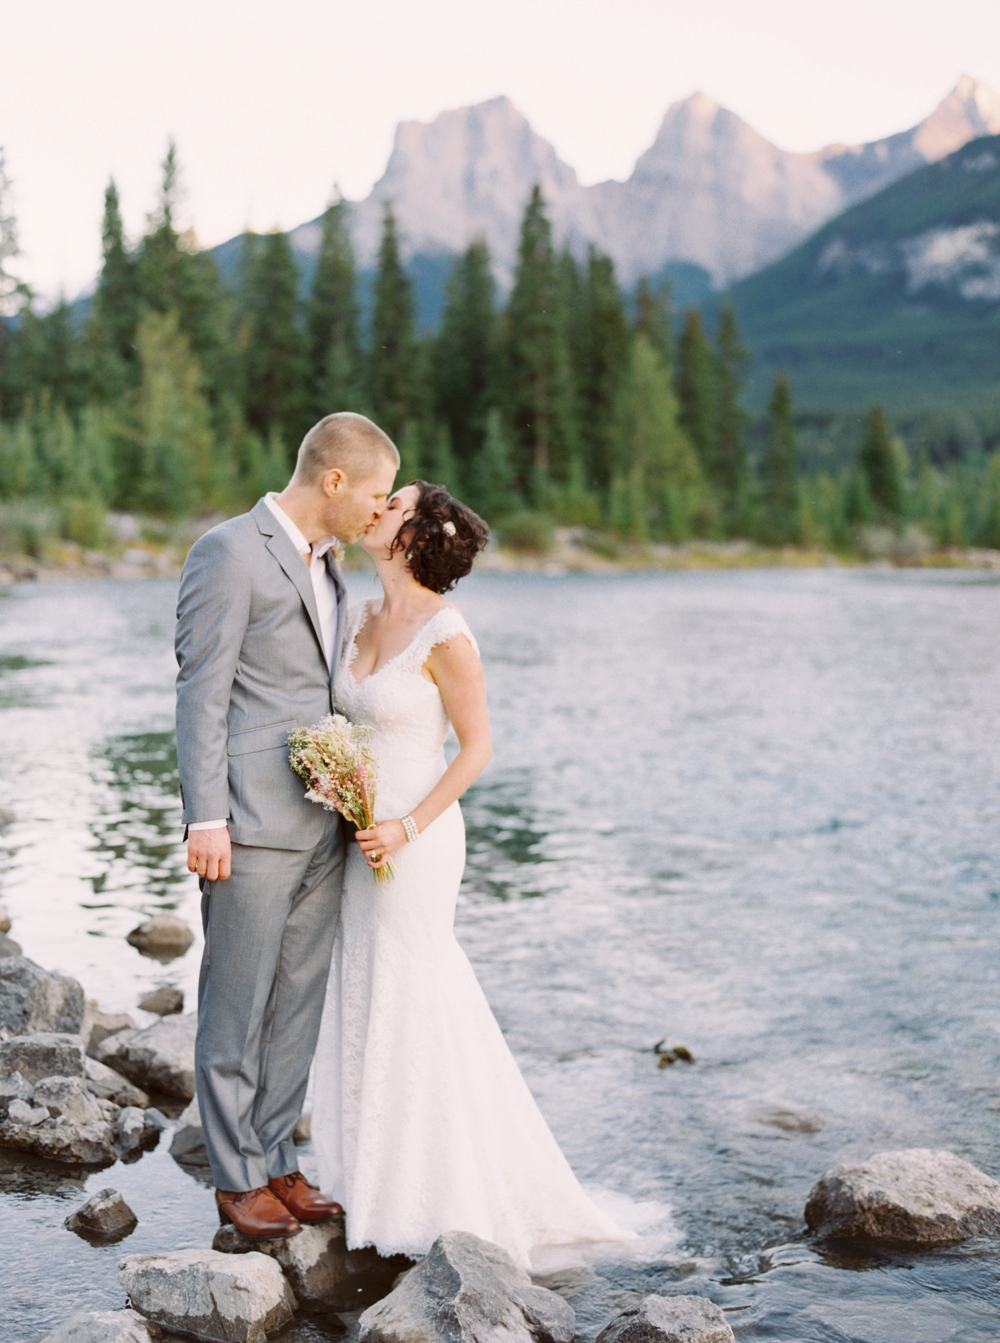 Canmore Wedding Photographers | Calgary Wedding Photographer | Silver Tip Wedding | Rocky Mountain Elopement